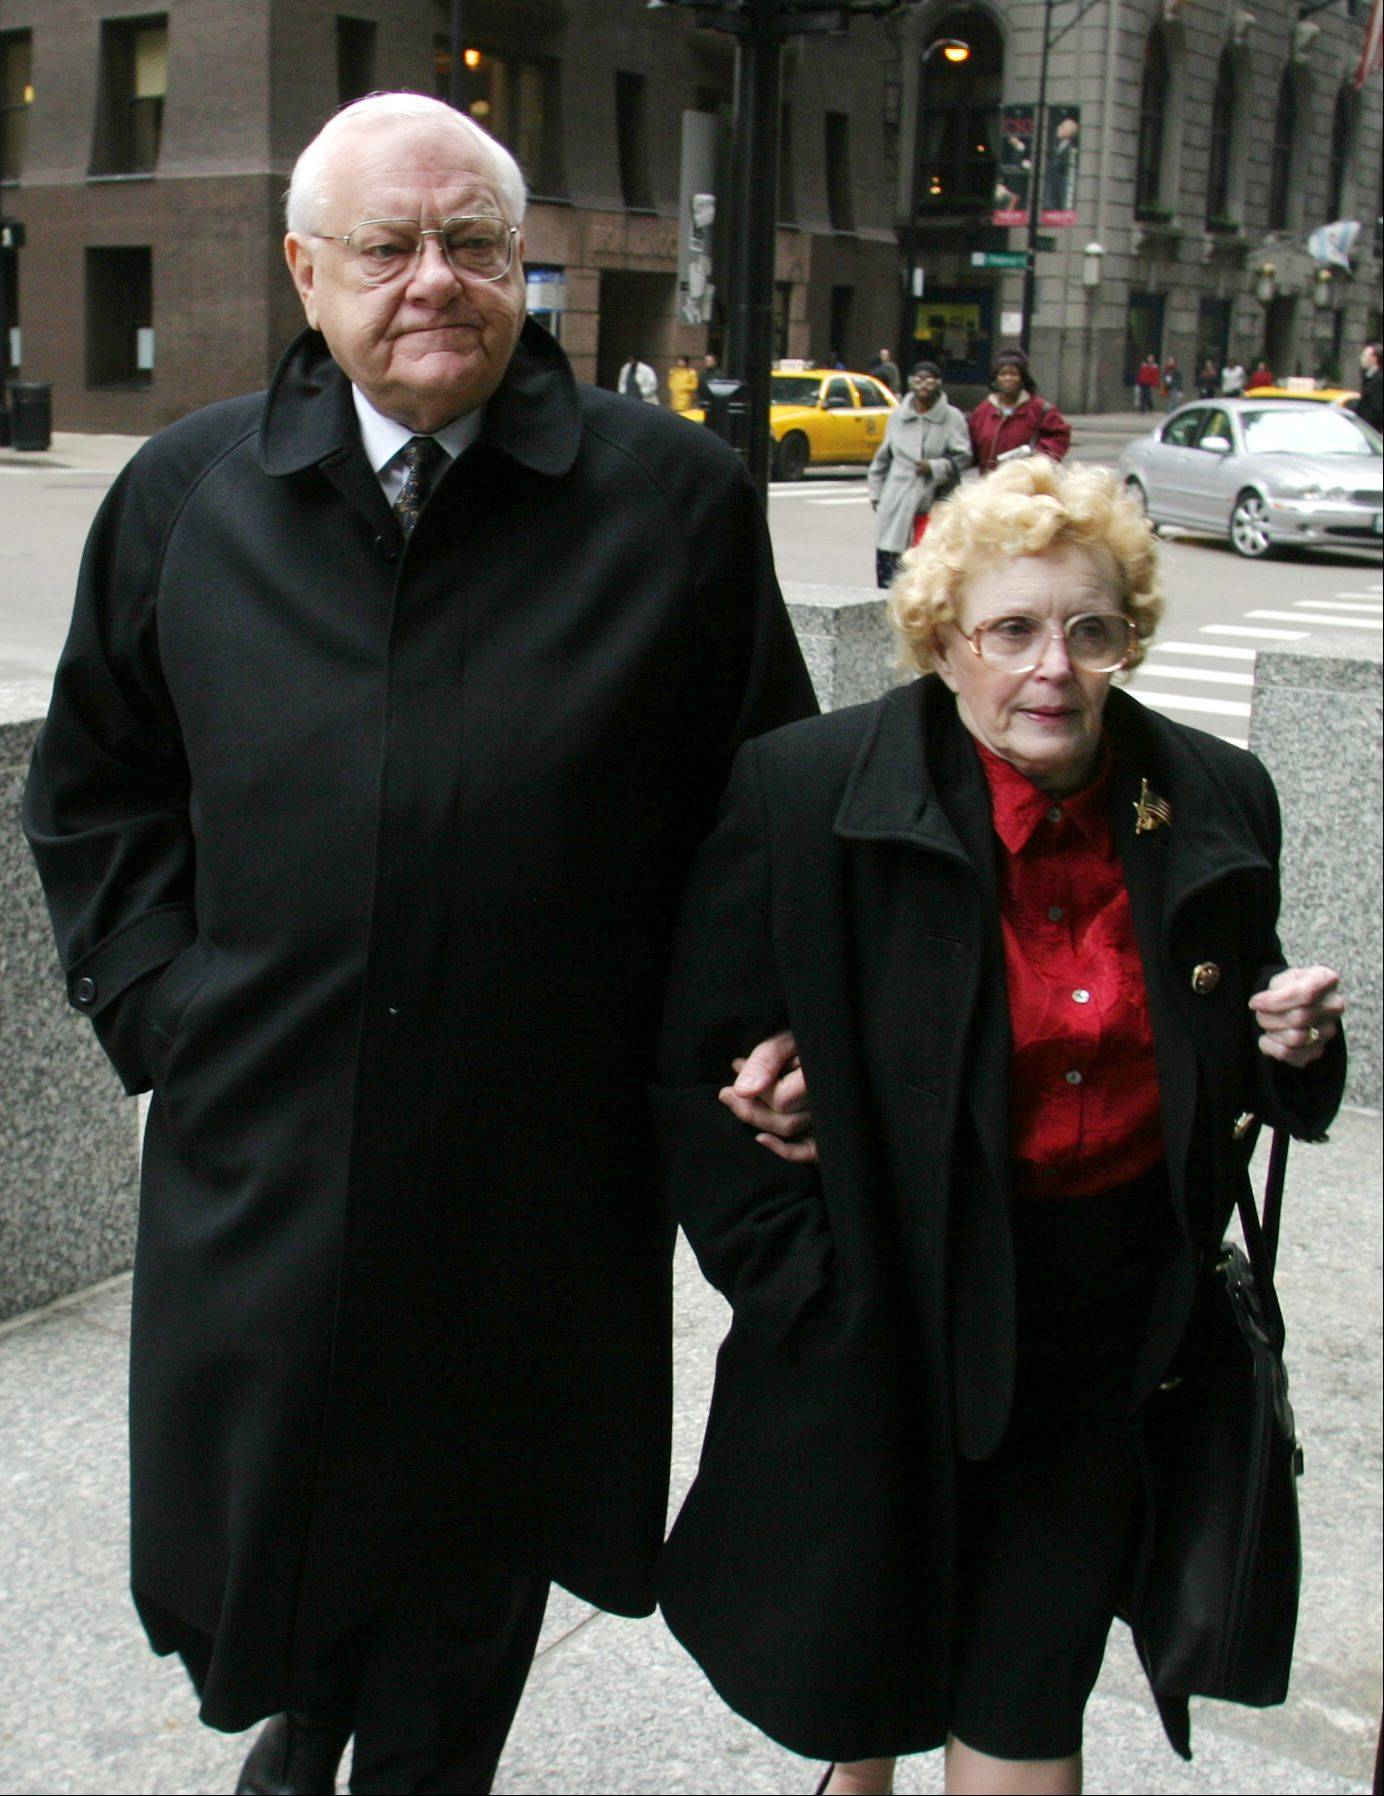 In this March 28, 2006 file photo, former Illinois Gov. George Ryan and his wife, Lura Lynn, arrive at Chicago's federal court.